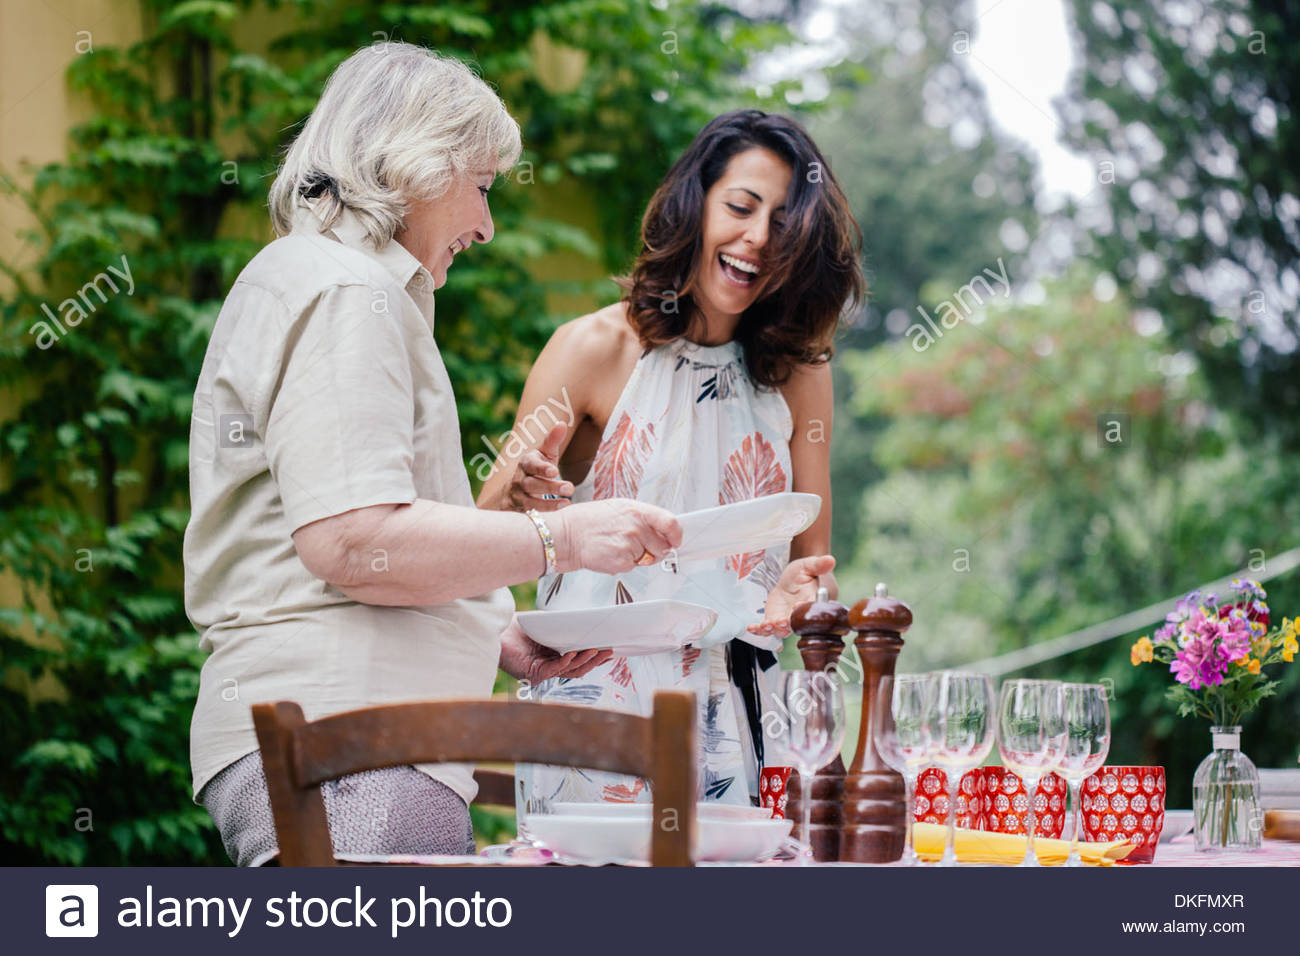 Mother and adult daughter setting table for family meal - Stock Image